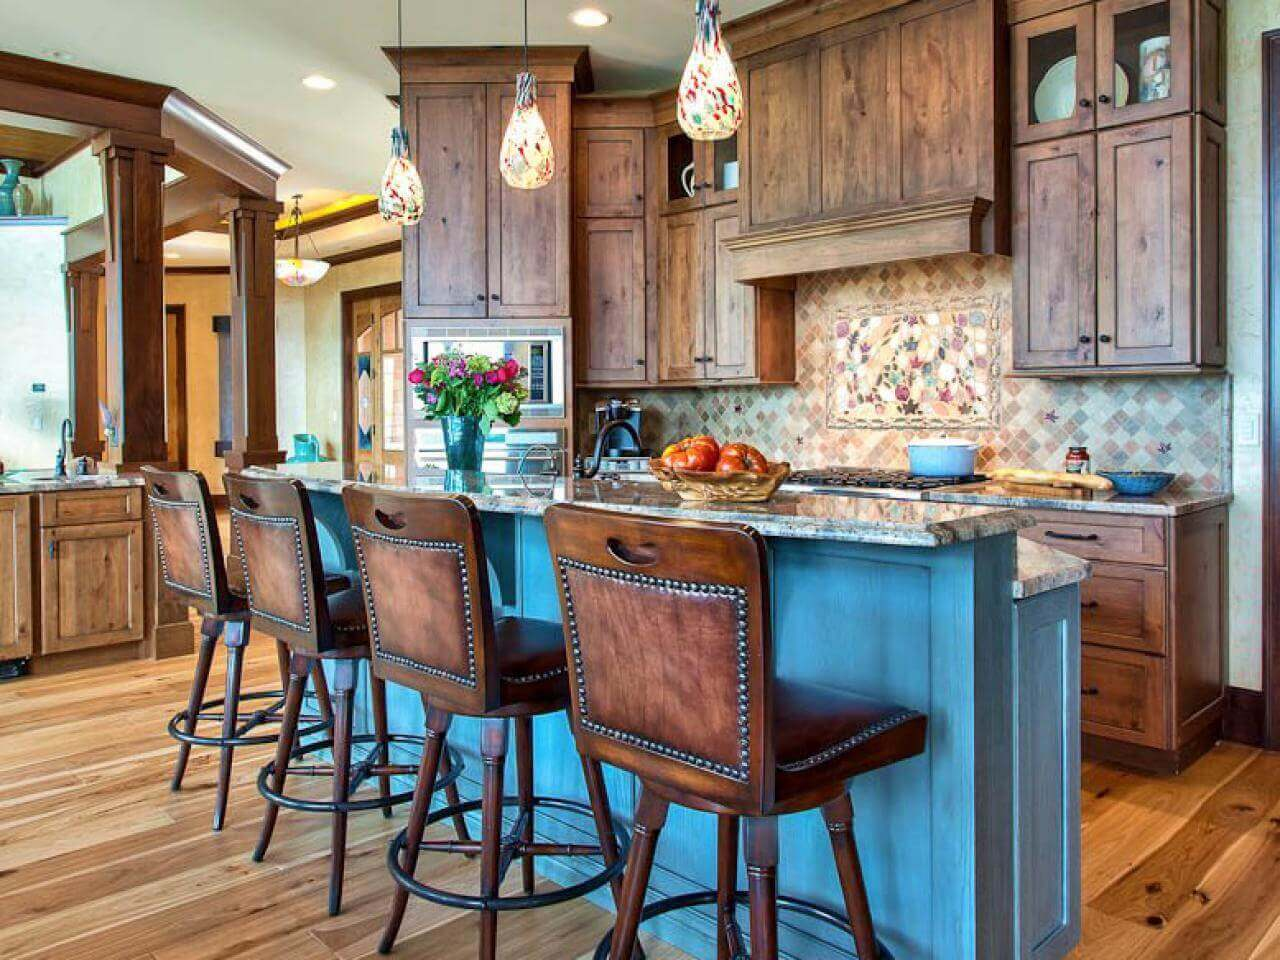 This small kitchen takes wooden décor to the extreme. It features a minimalist kitchen island with chairs that adds a touch of warmth and a modern feel. The four rustic chairs serve a perfect conversation piece